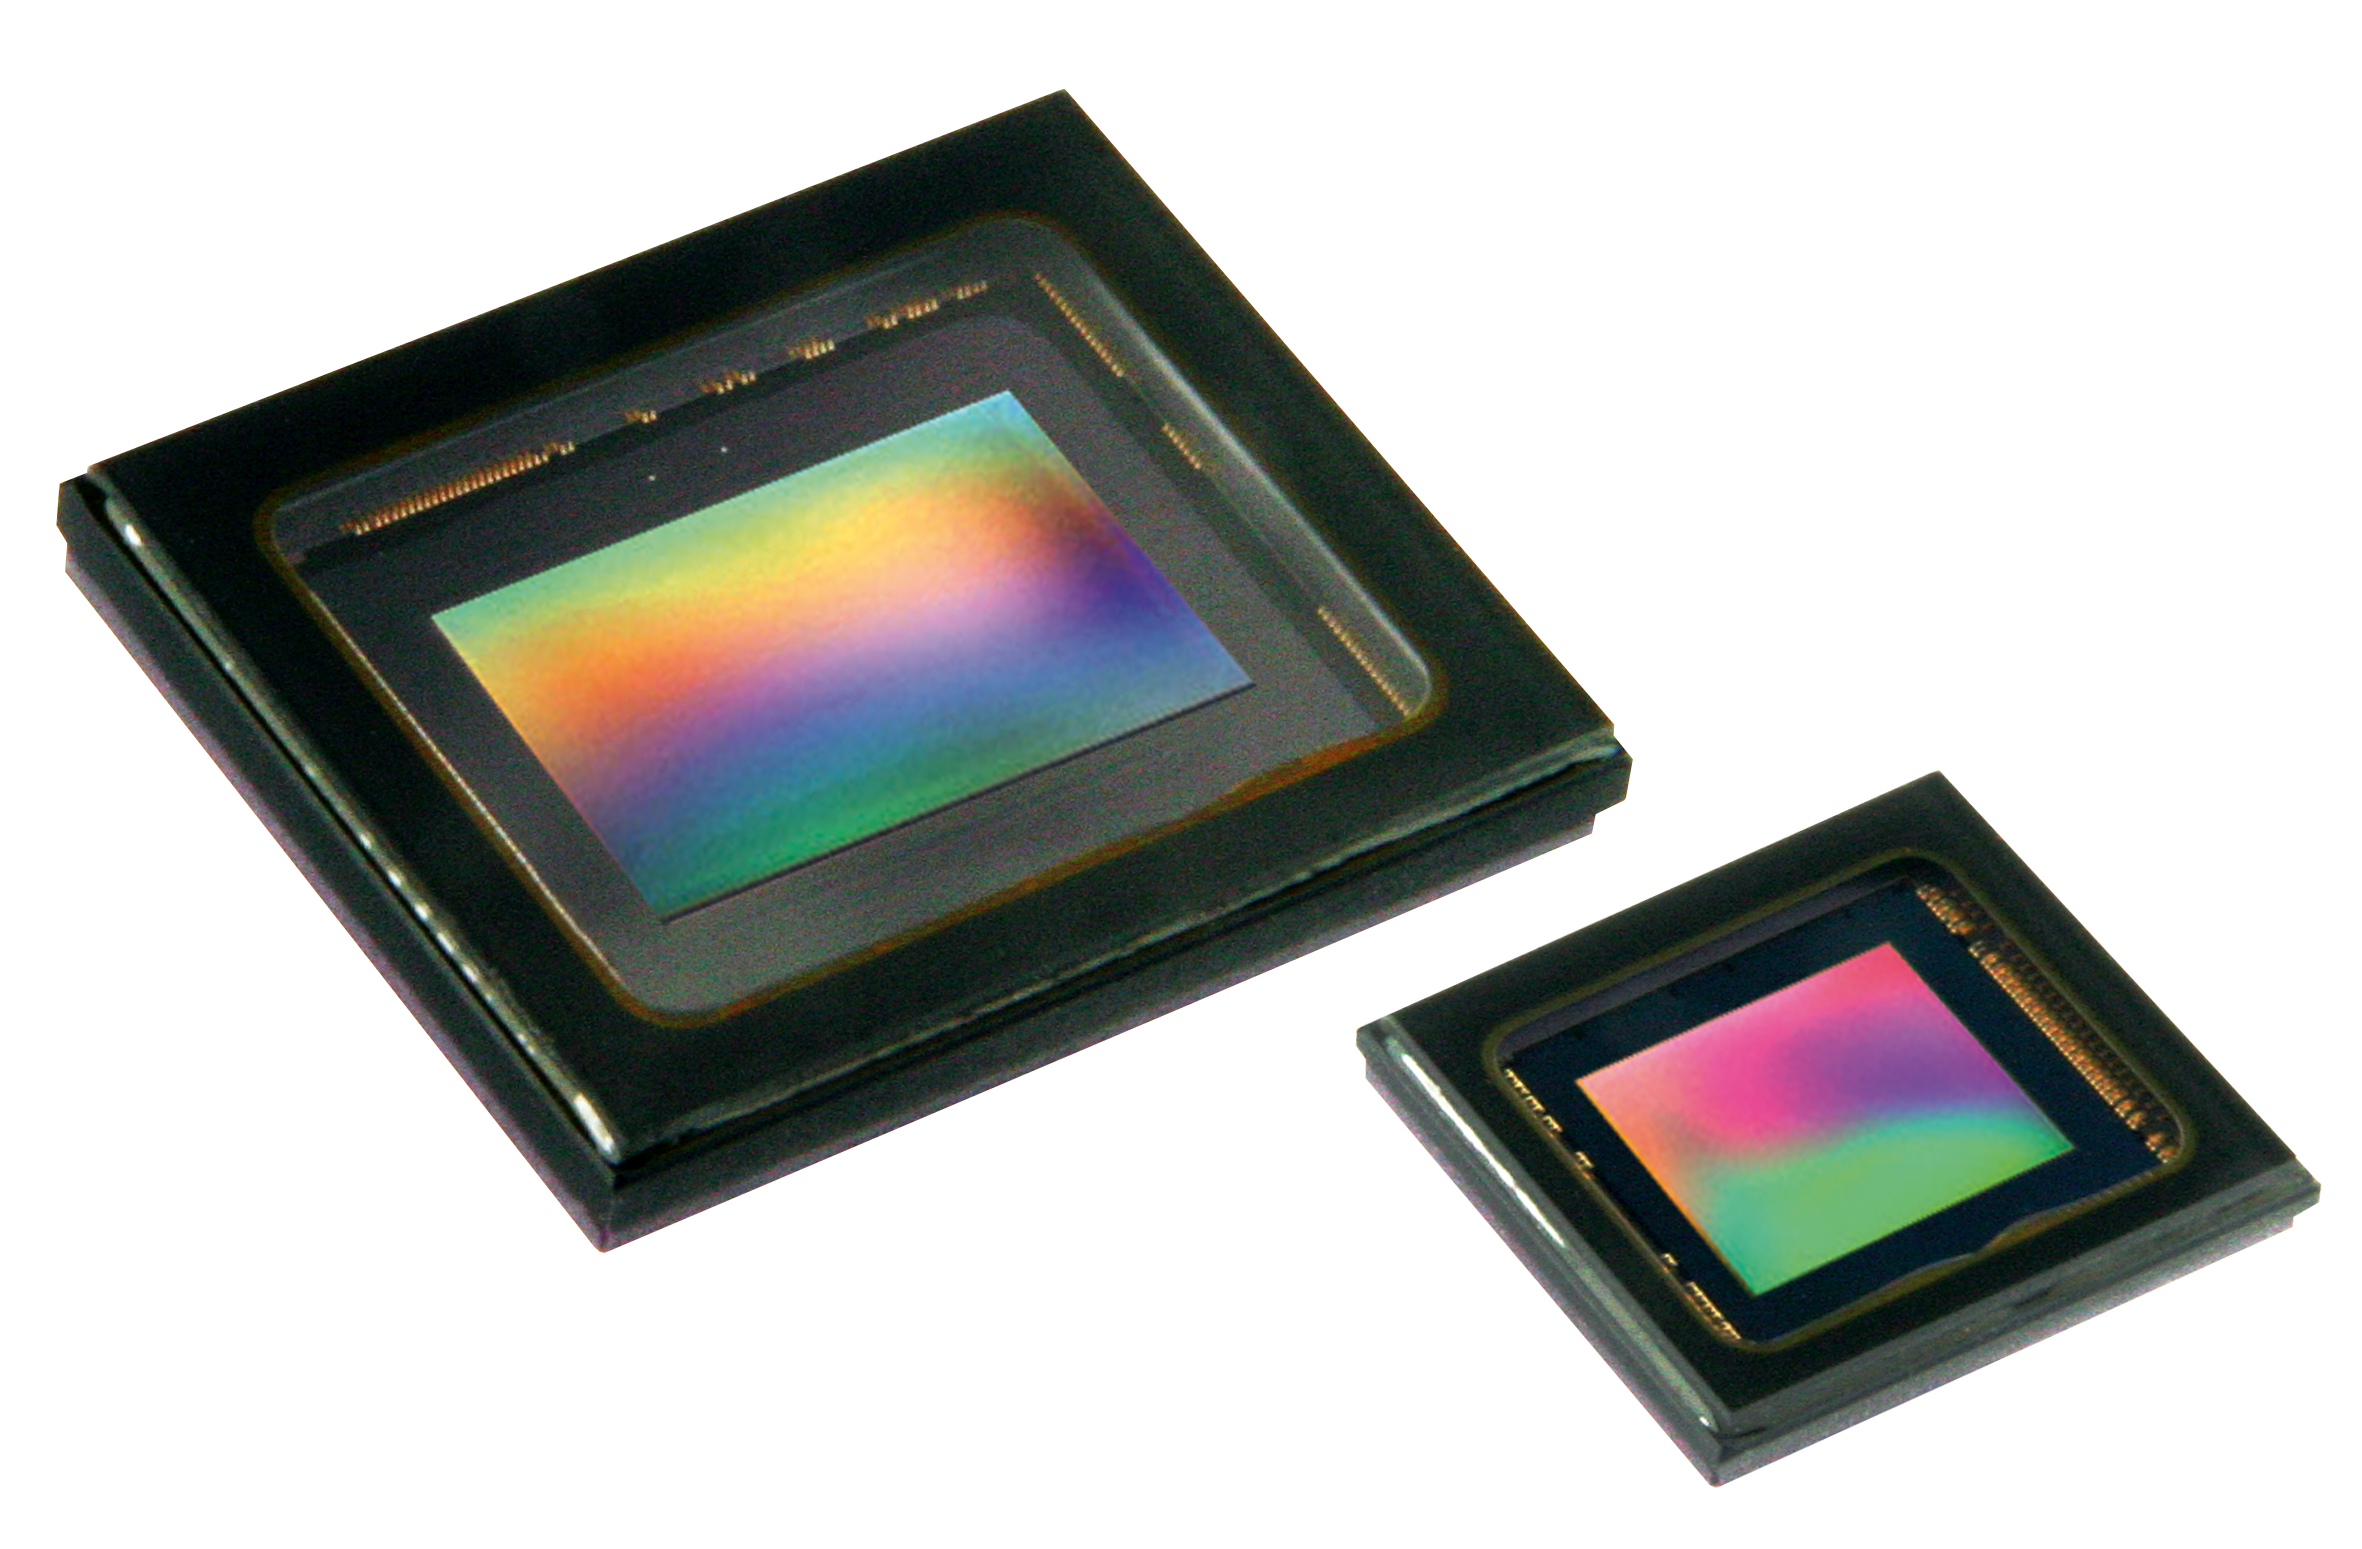 SONY® launches its 3rd Generation Image Sensors, IMX421 and